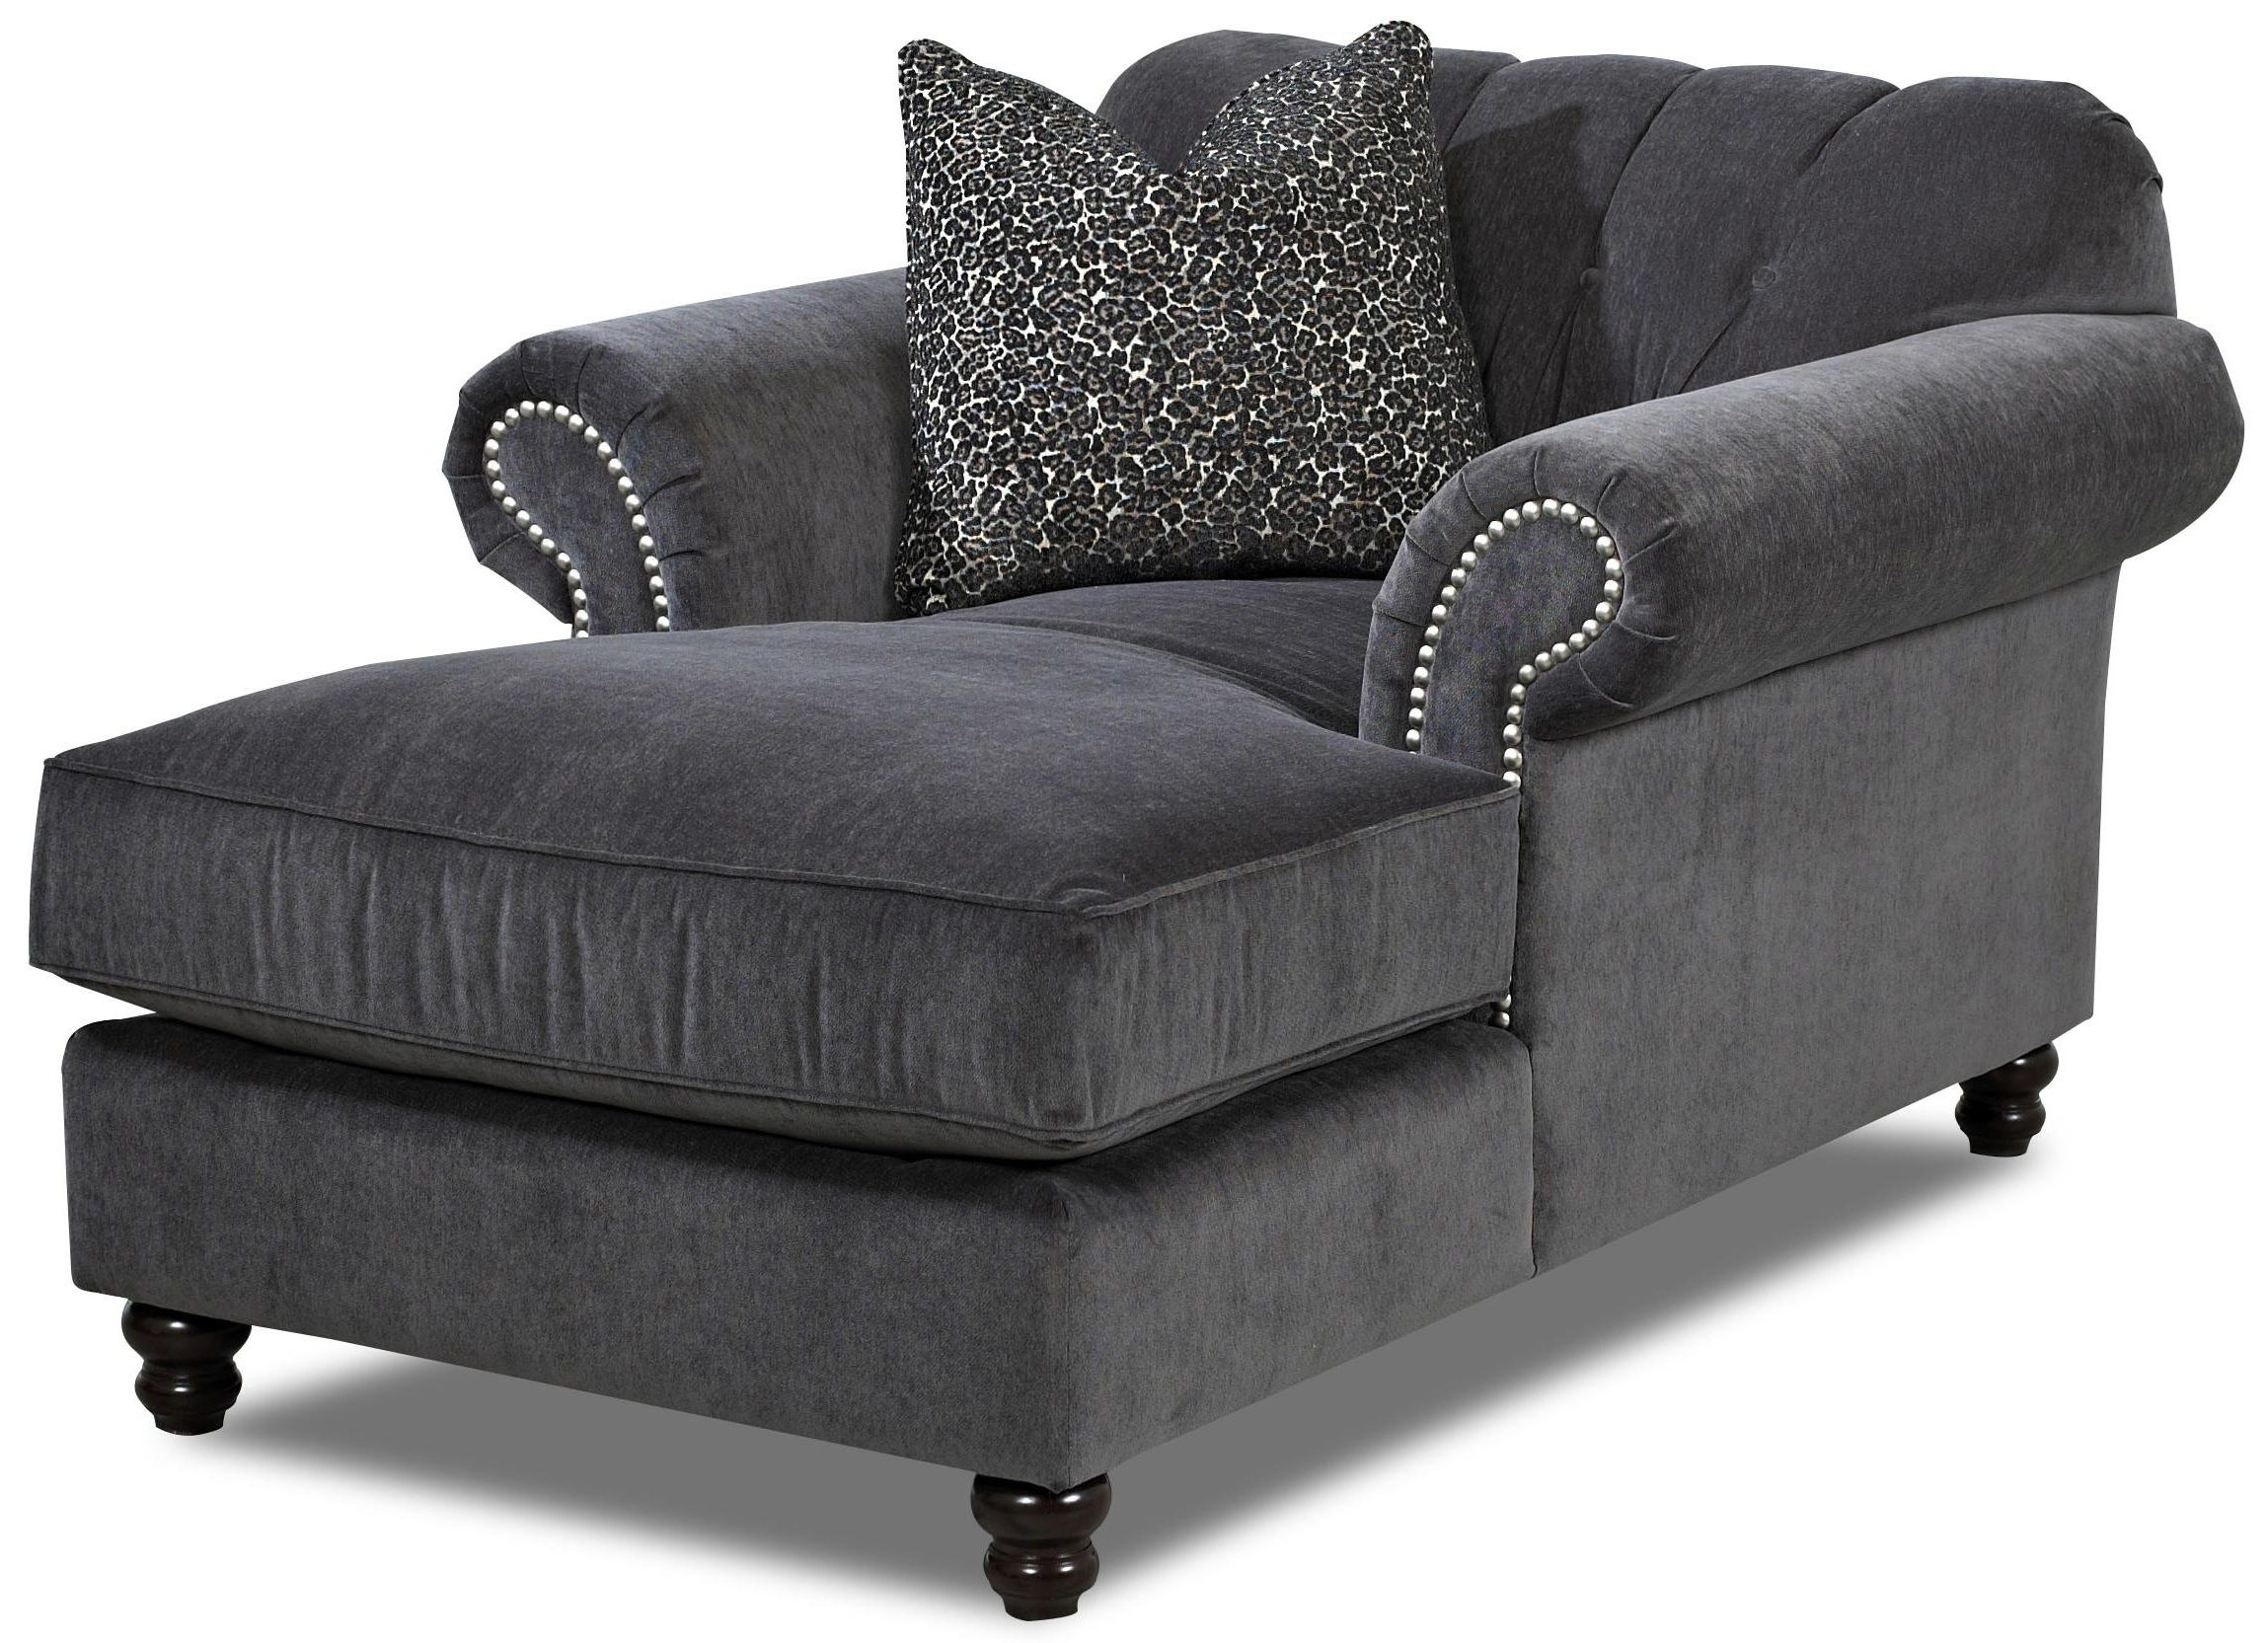 Most Current Tufted Chaise Lounges For Lounge Chair : Sale Brown Chaise Lounge Indoor Faux Leather Chaise (View 11 of 15)